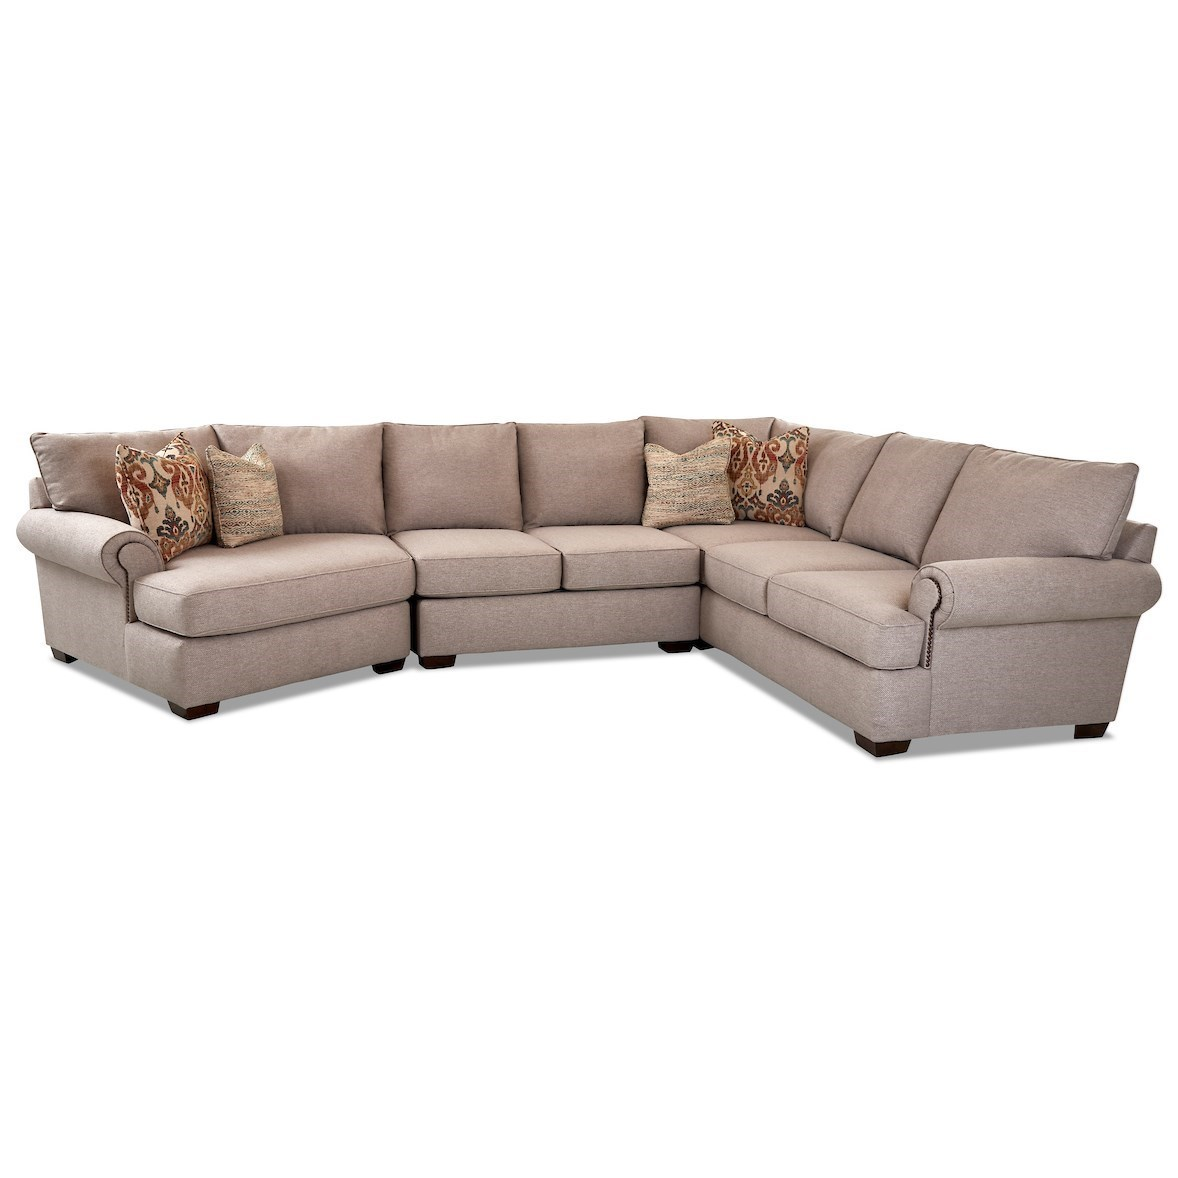 Ginger 5-Seat Sectional Sofa w/ LAF Cuddler Chair by Klaussner at Johnny Janosik